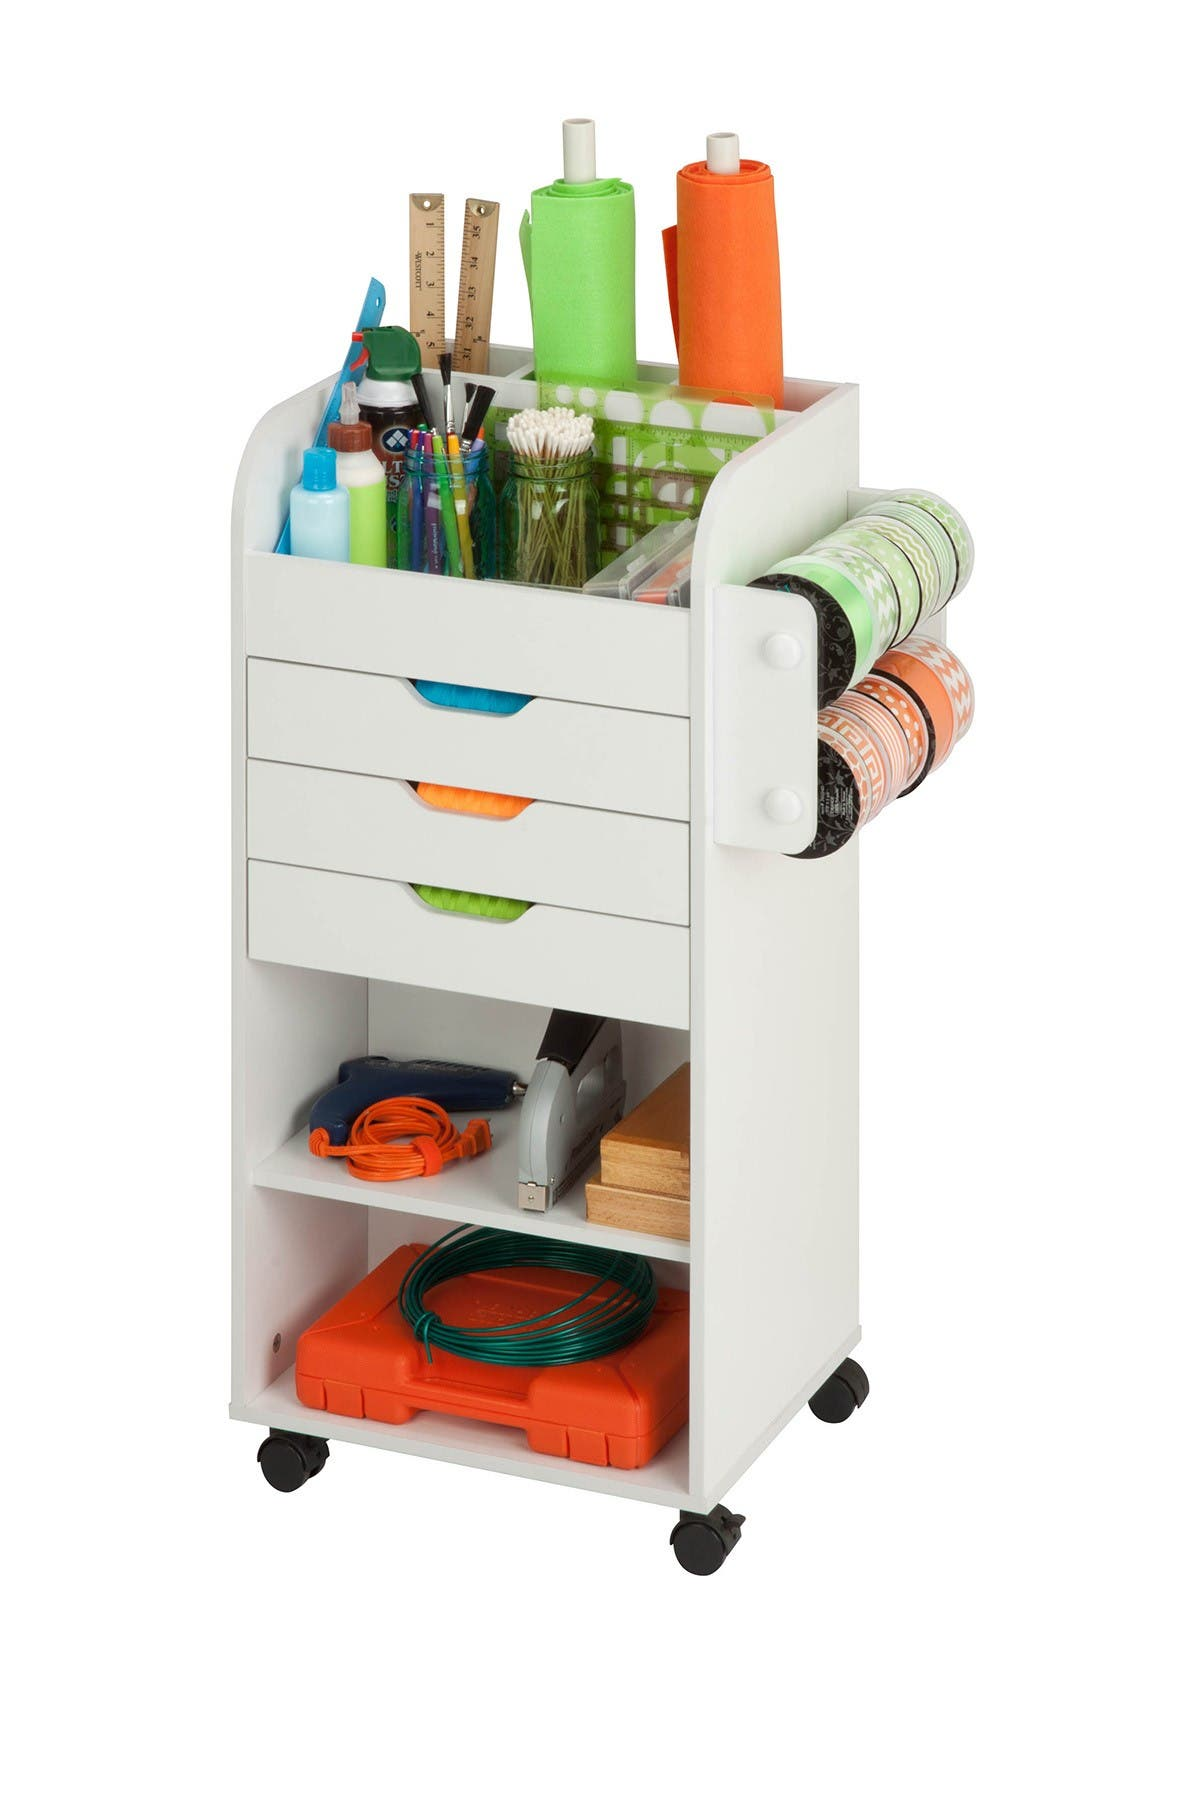 Image of Honey-Can-Do Rolling Craft Storage Cart